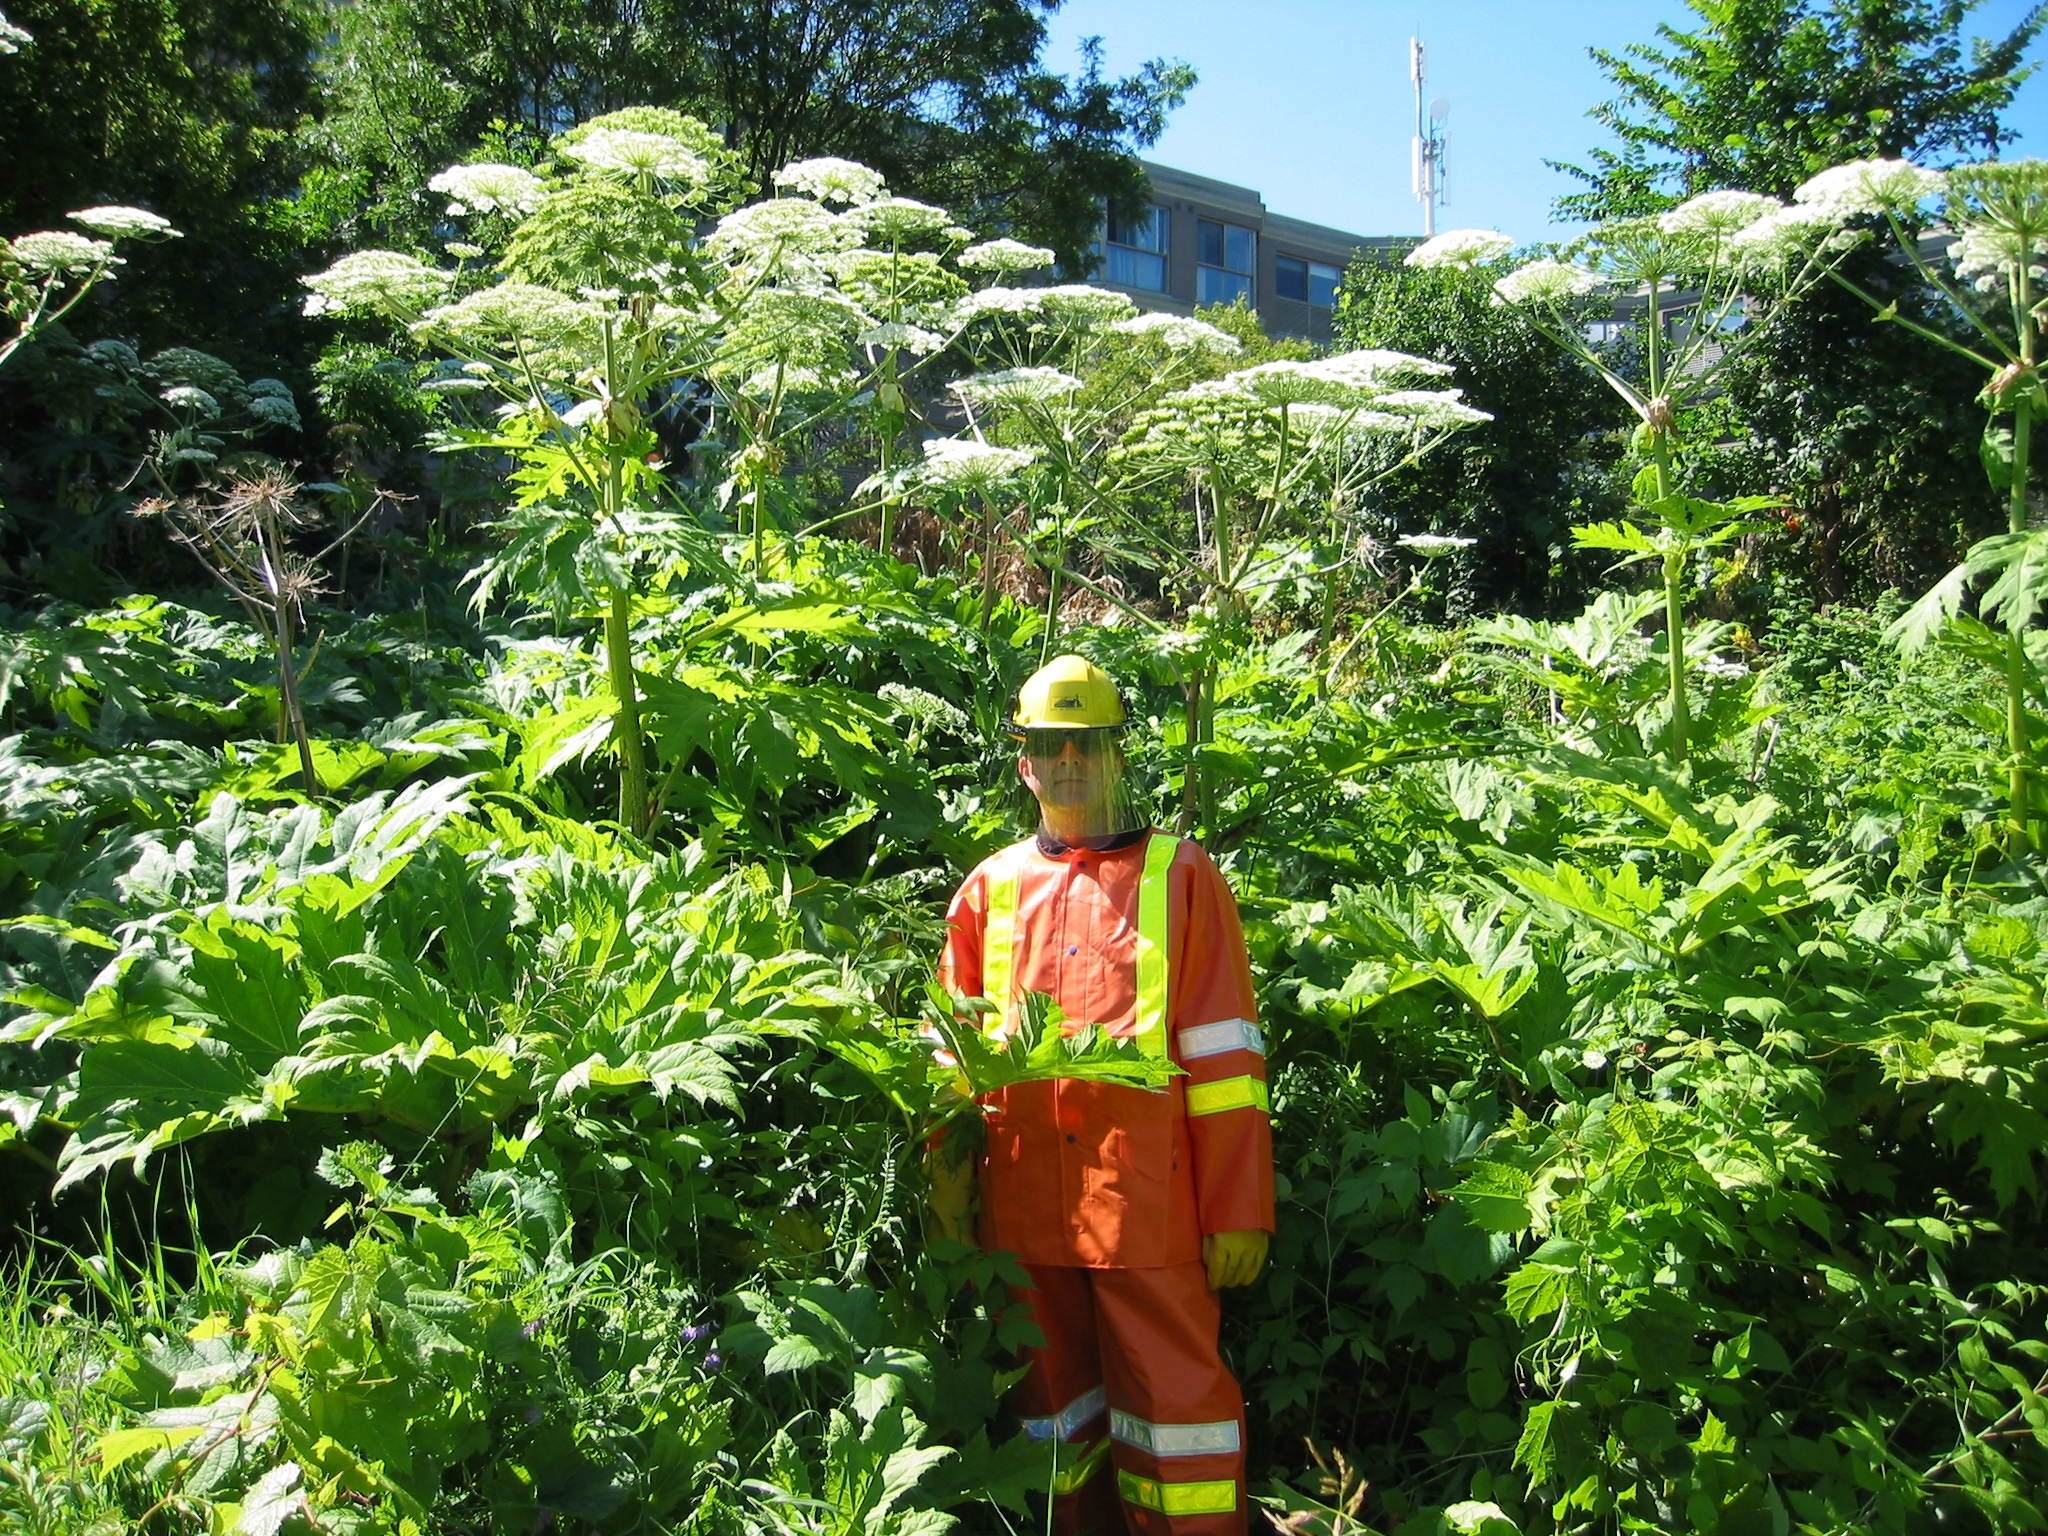 Wild parsnip, giant hogweed: Toxic plants to watch out for ...